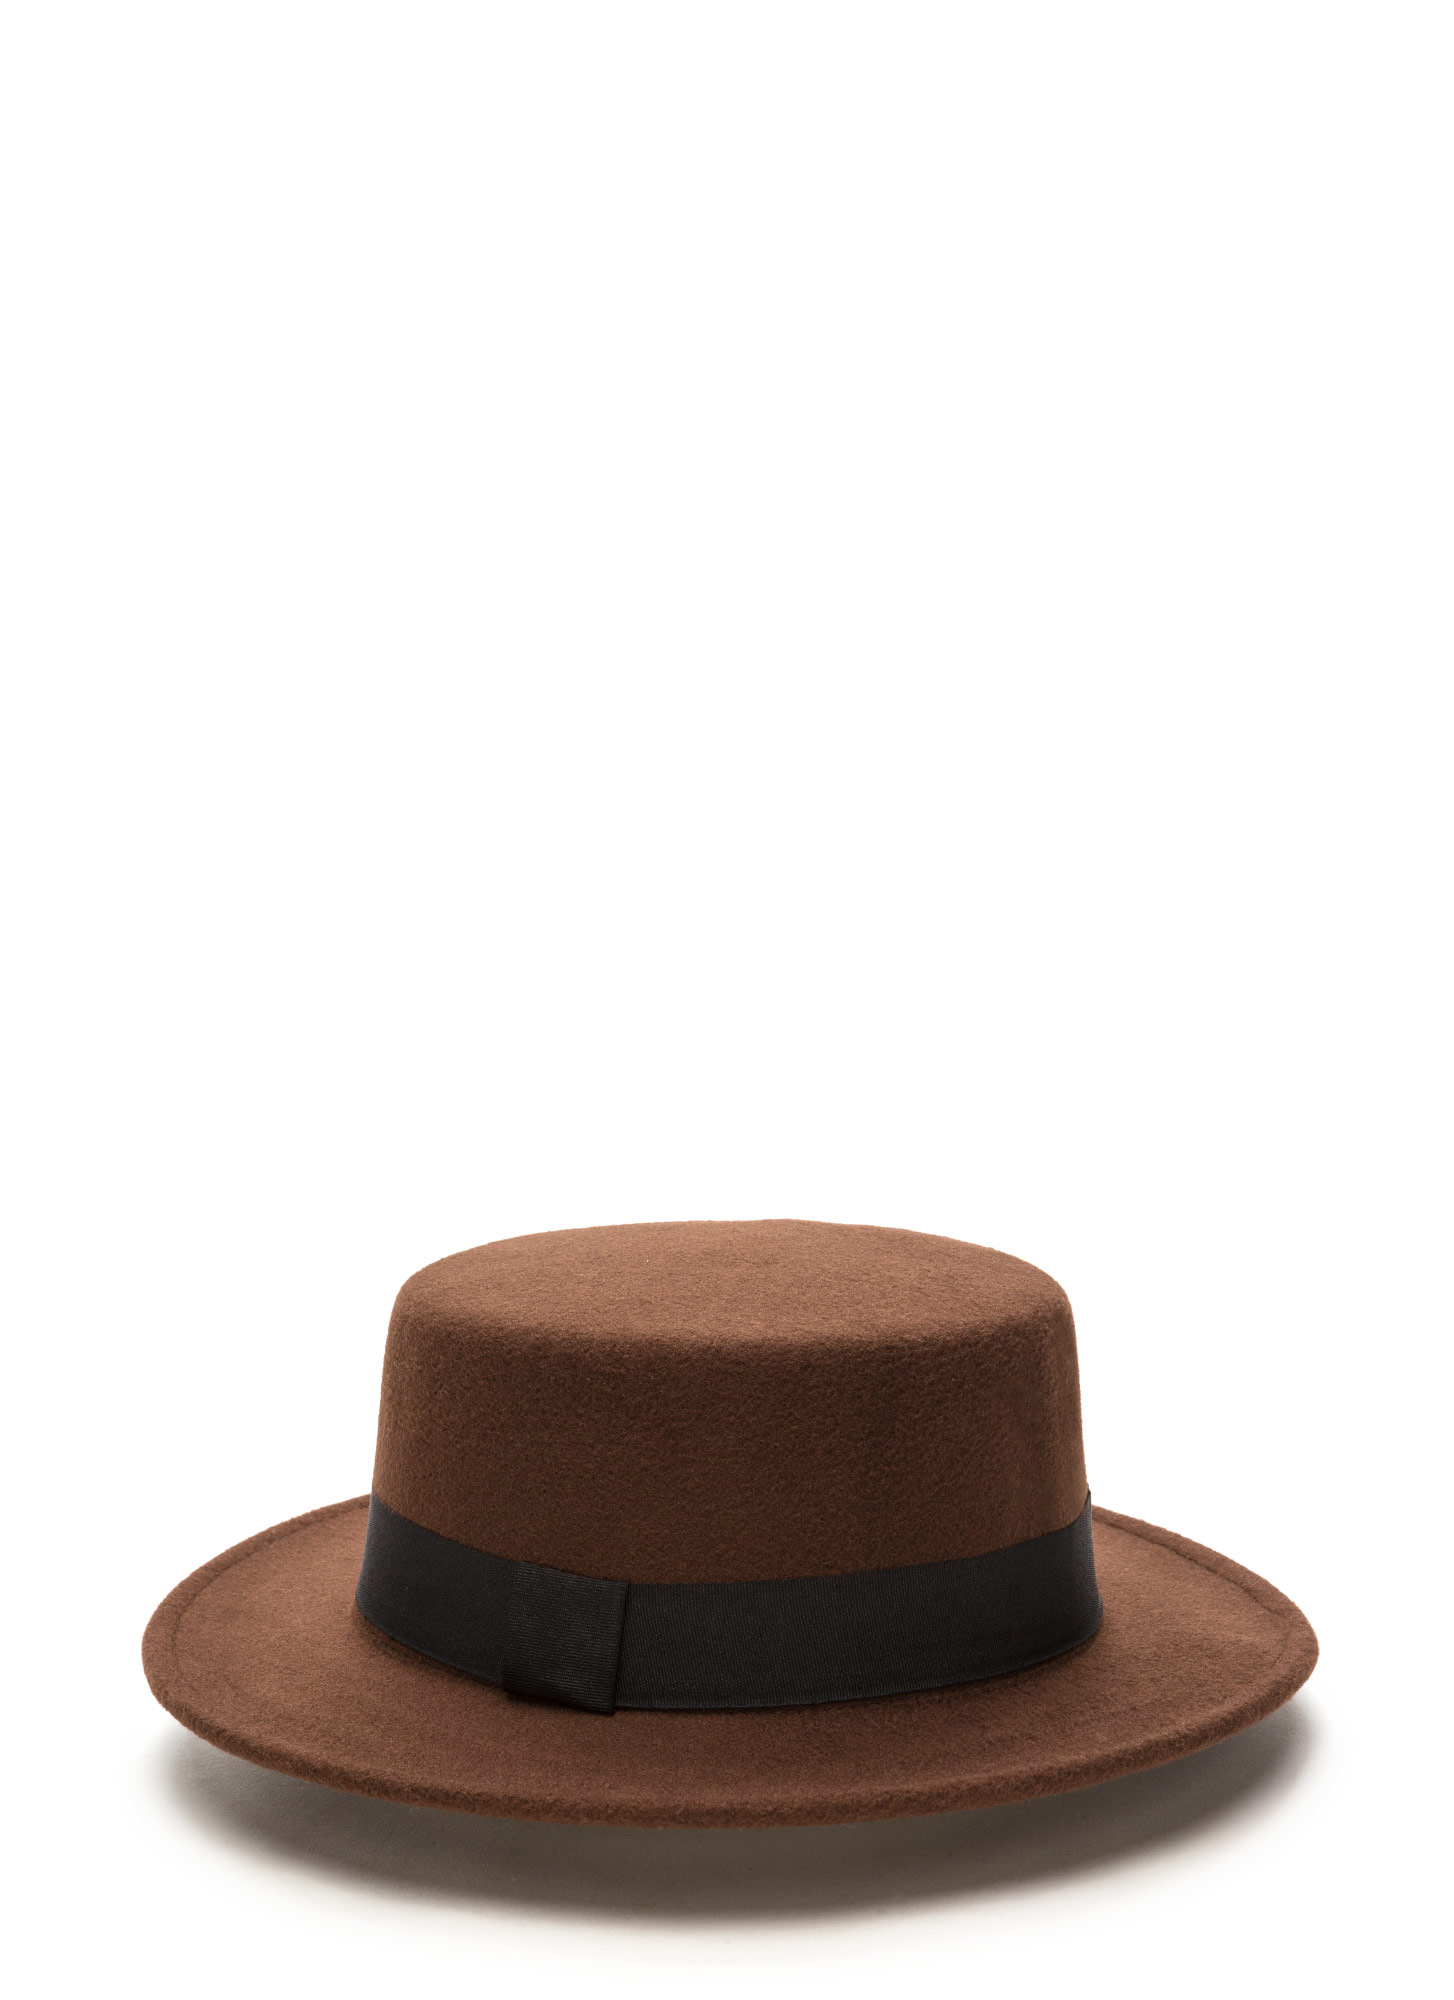 Flat Out Felt Boater Hat BROWN